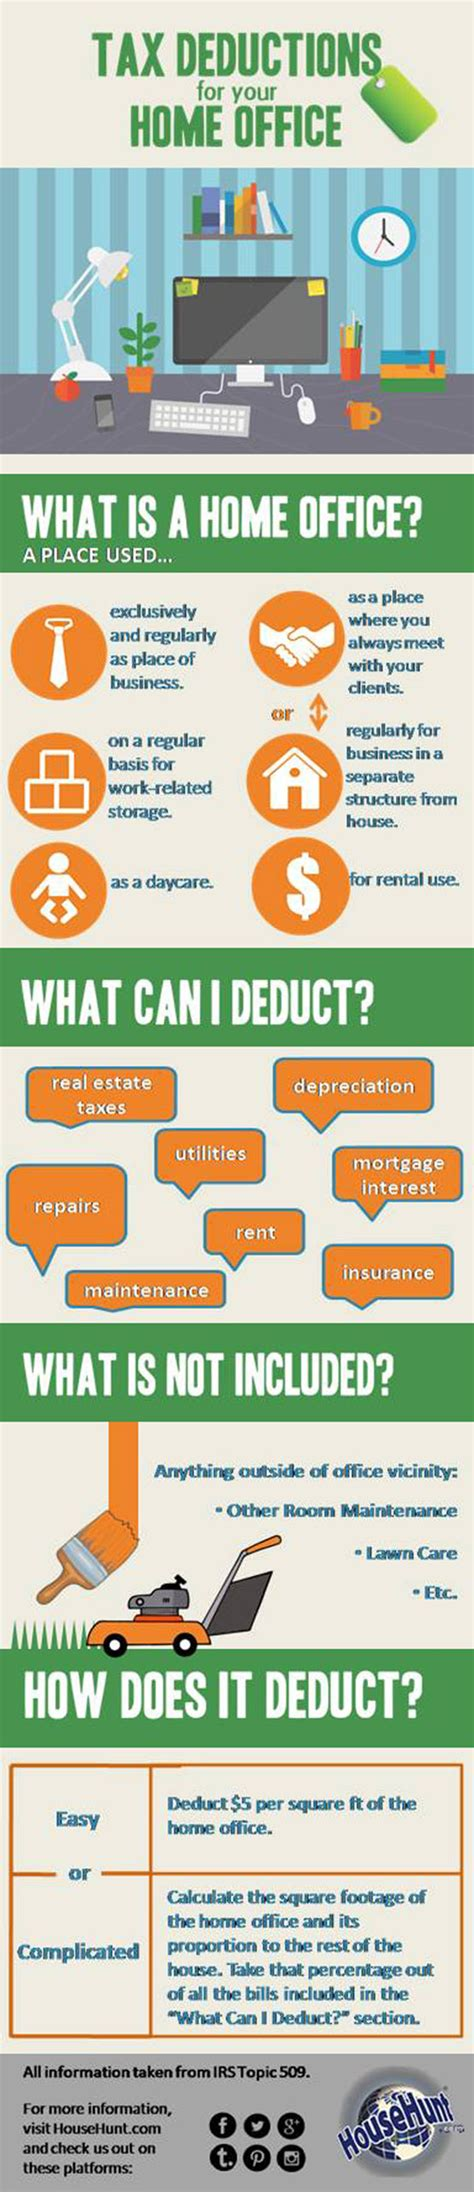 tax deductions buying house tax deduction for buying a house 28 images tax deductions for buying a home home